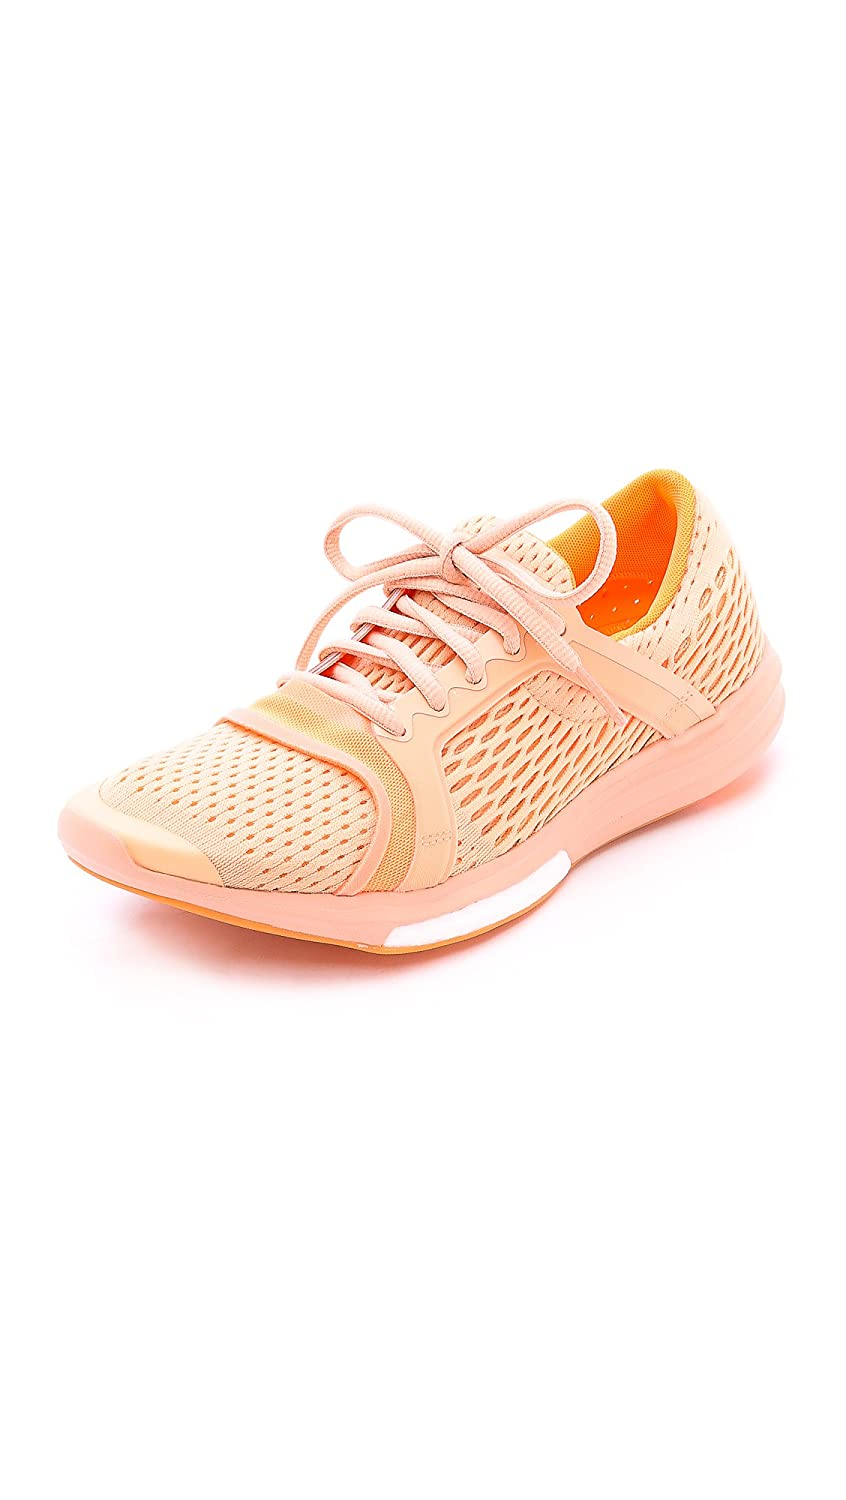 adidas by Stella McCartney Women's Climacool Sneakers